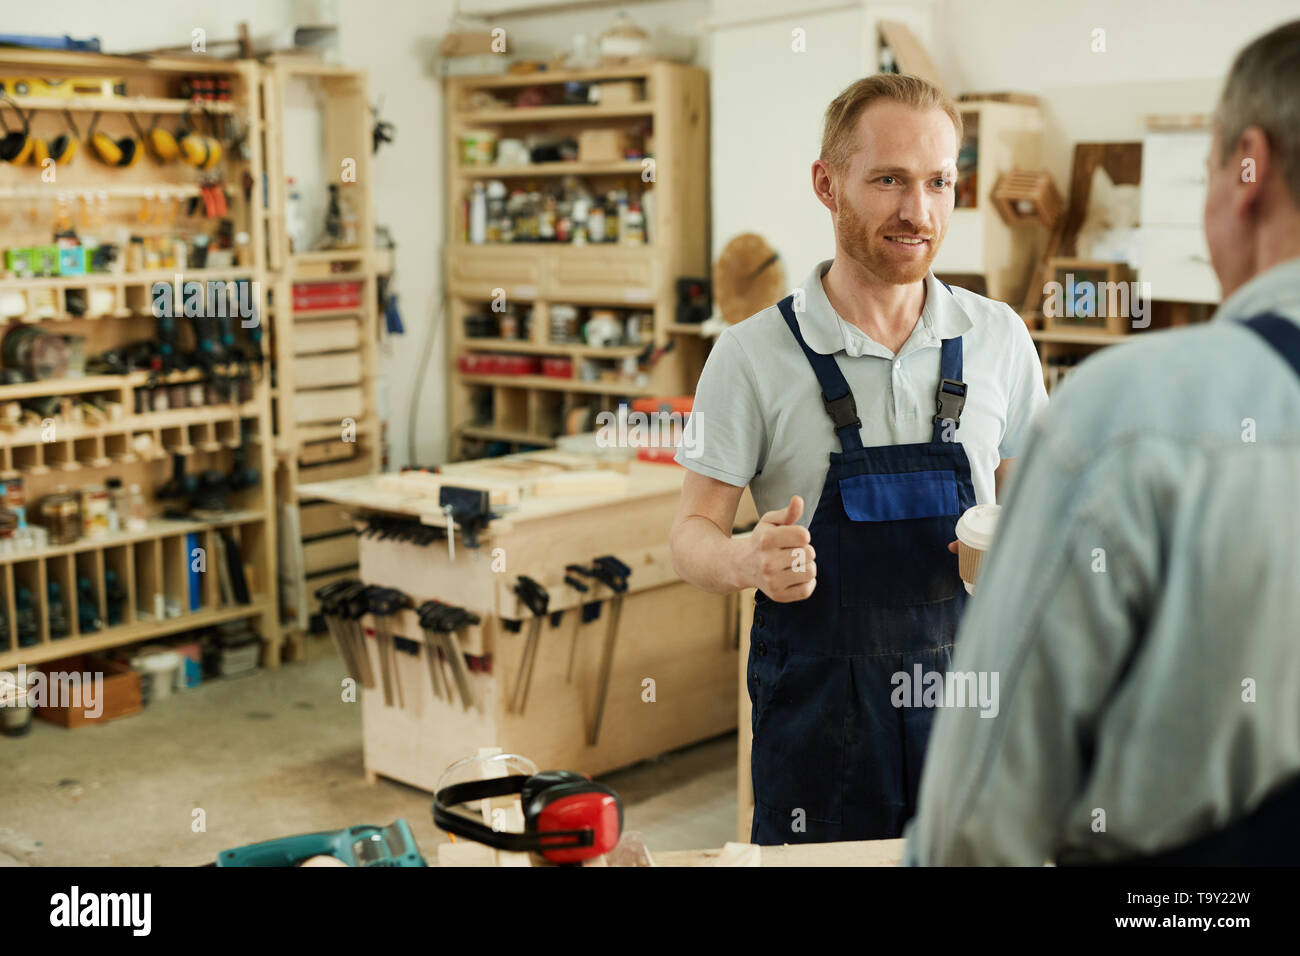 Portrait of young carpenter talking to senior worker during coffee break in workshop, copy space - Stock Image